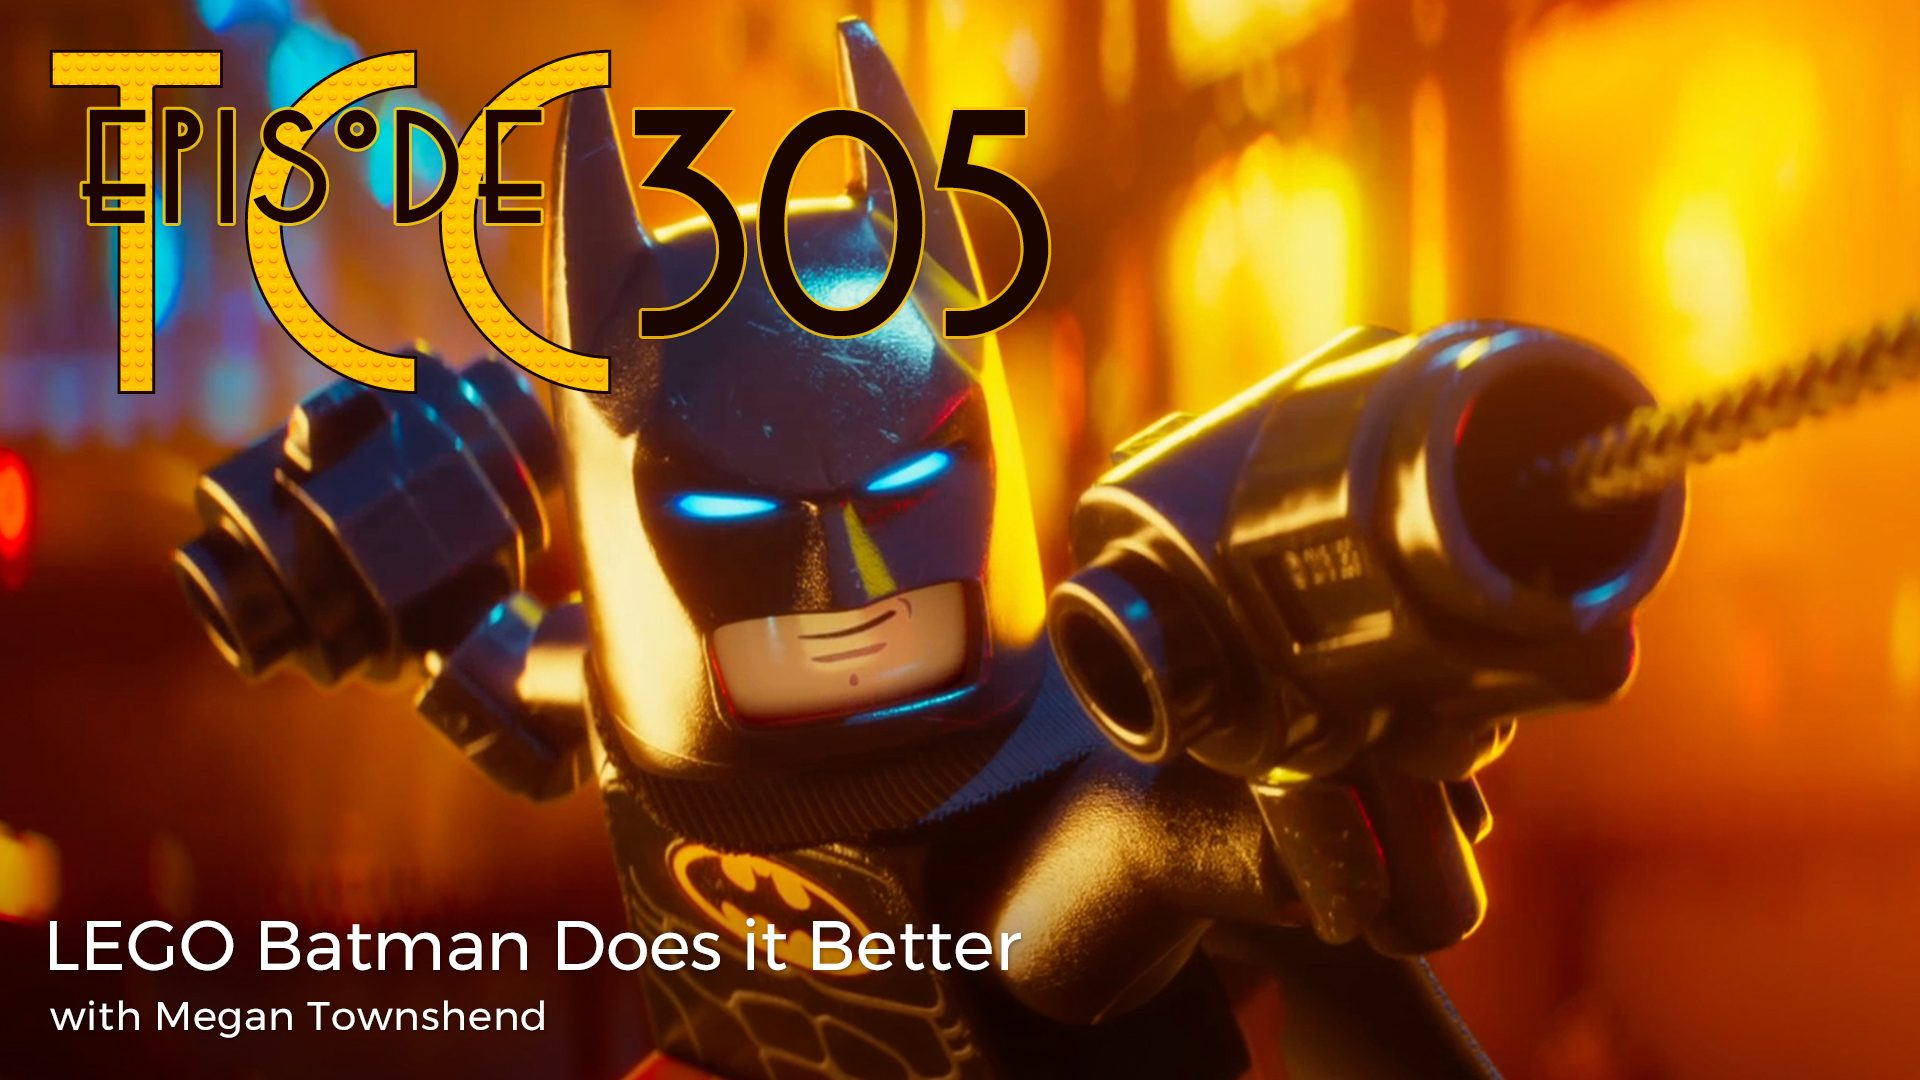 The Citadel Cafe 305: LEGO Batman Does It Better